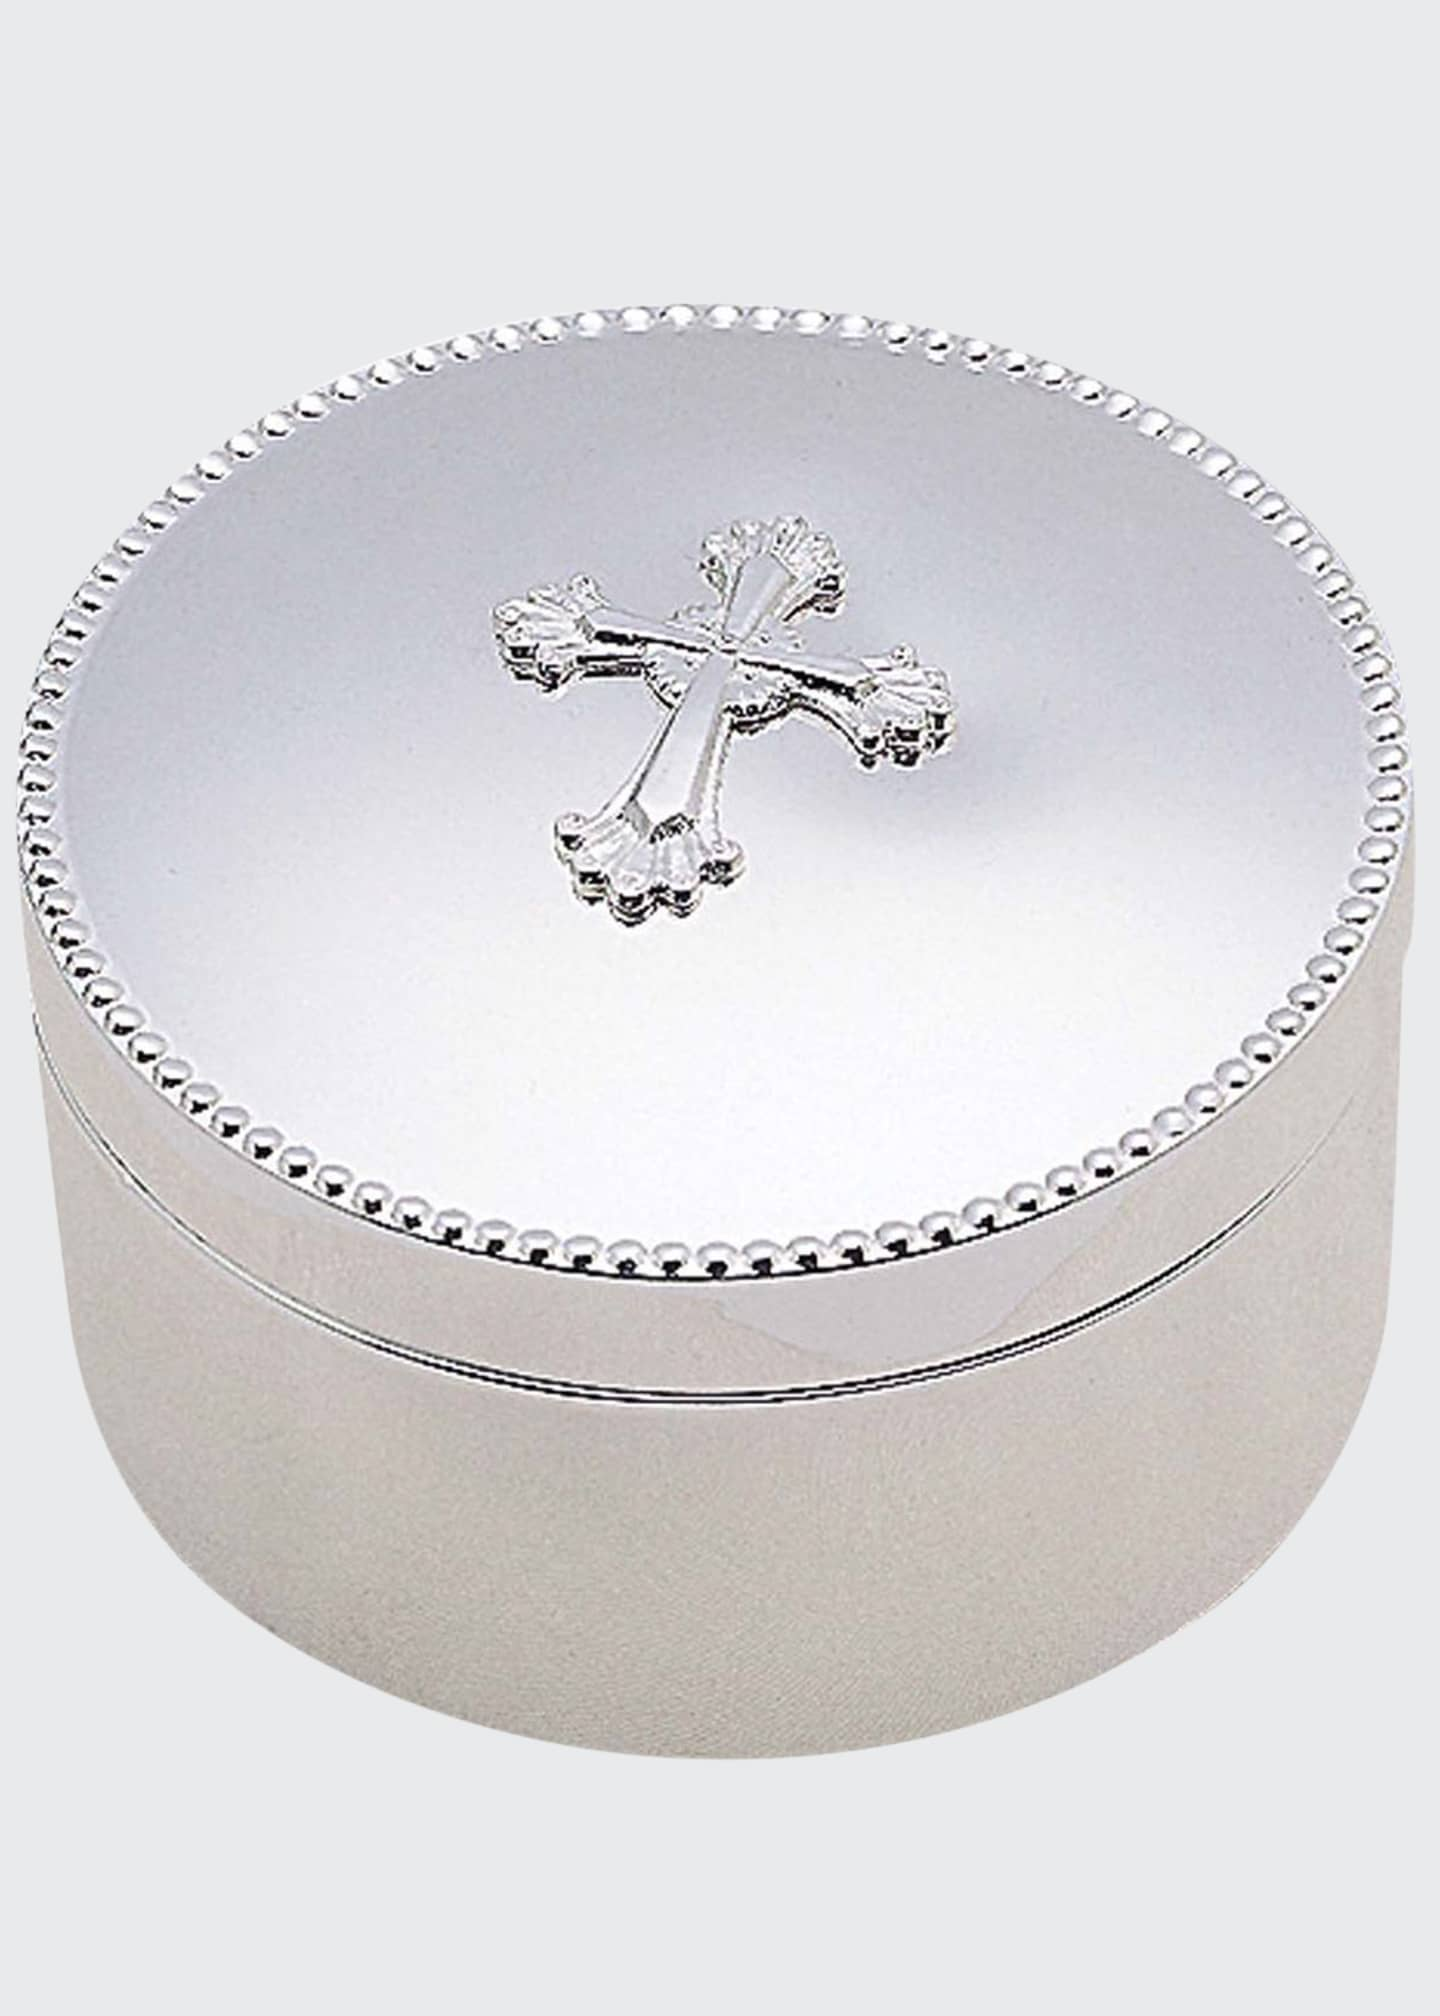 Reed & Barton Abbey Cross Keepsake Box